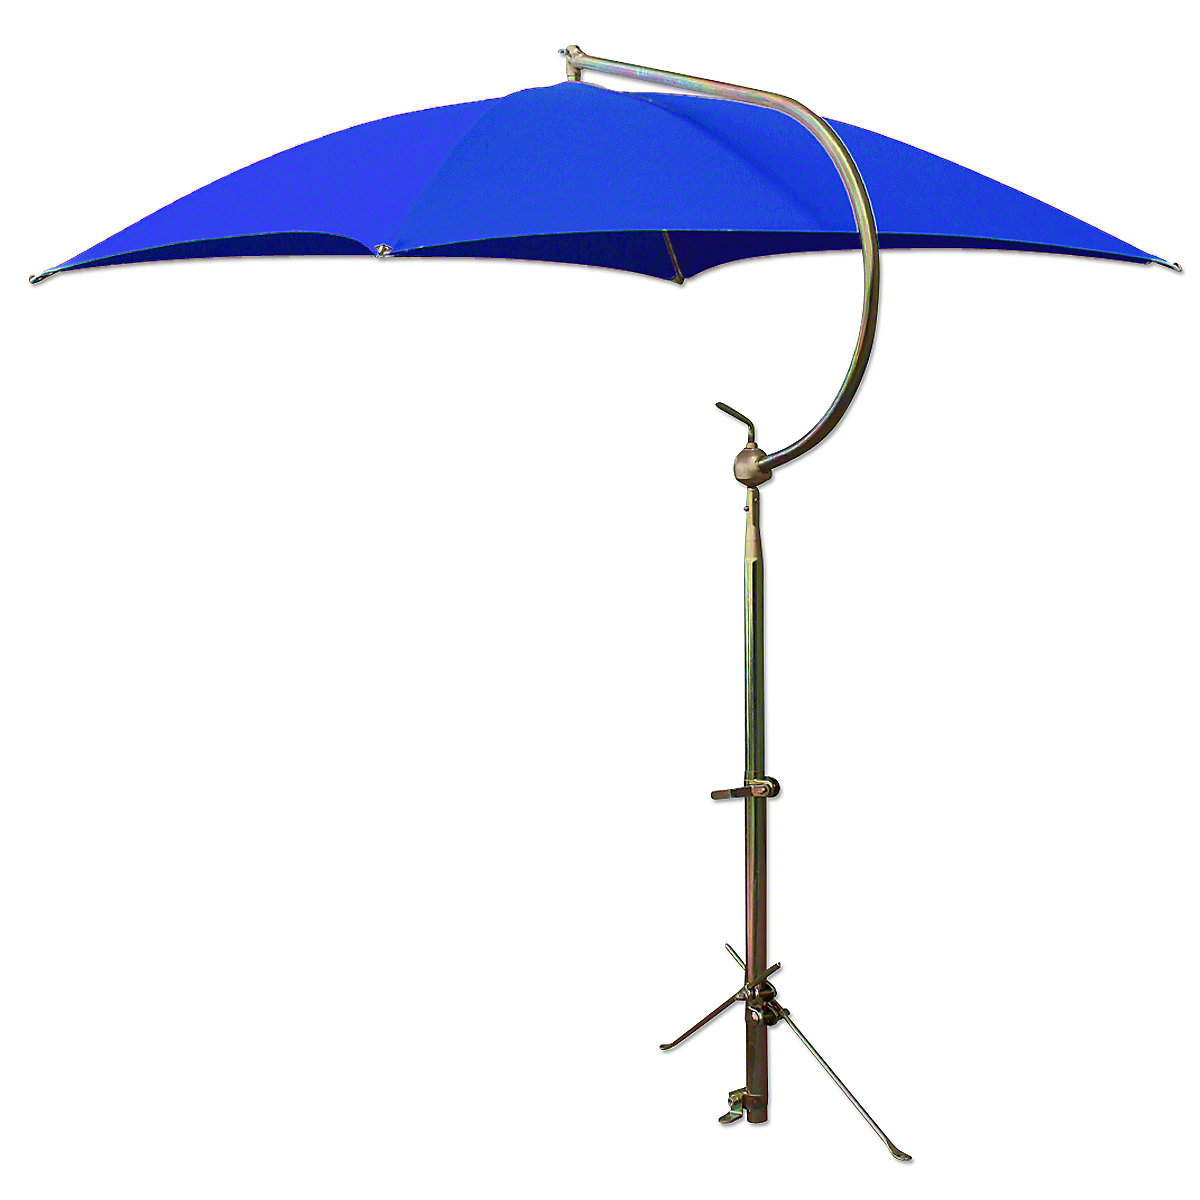 ABC2366 Deluxe Blue Umbrella with Brackets